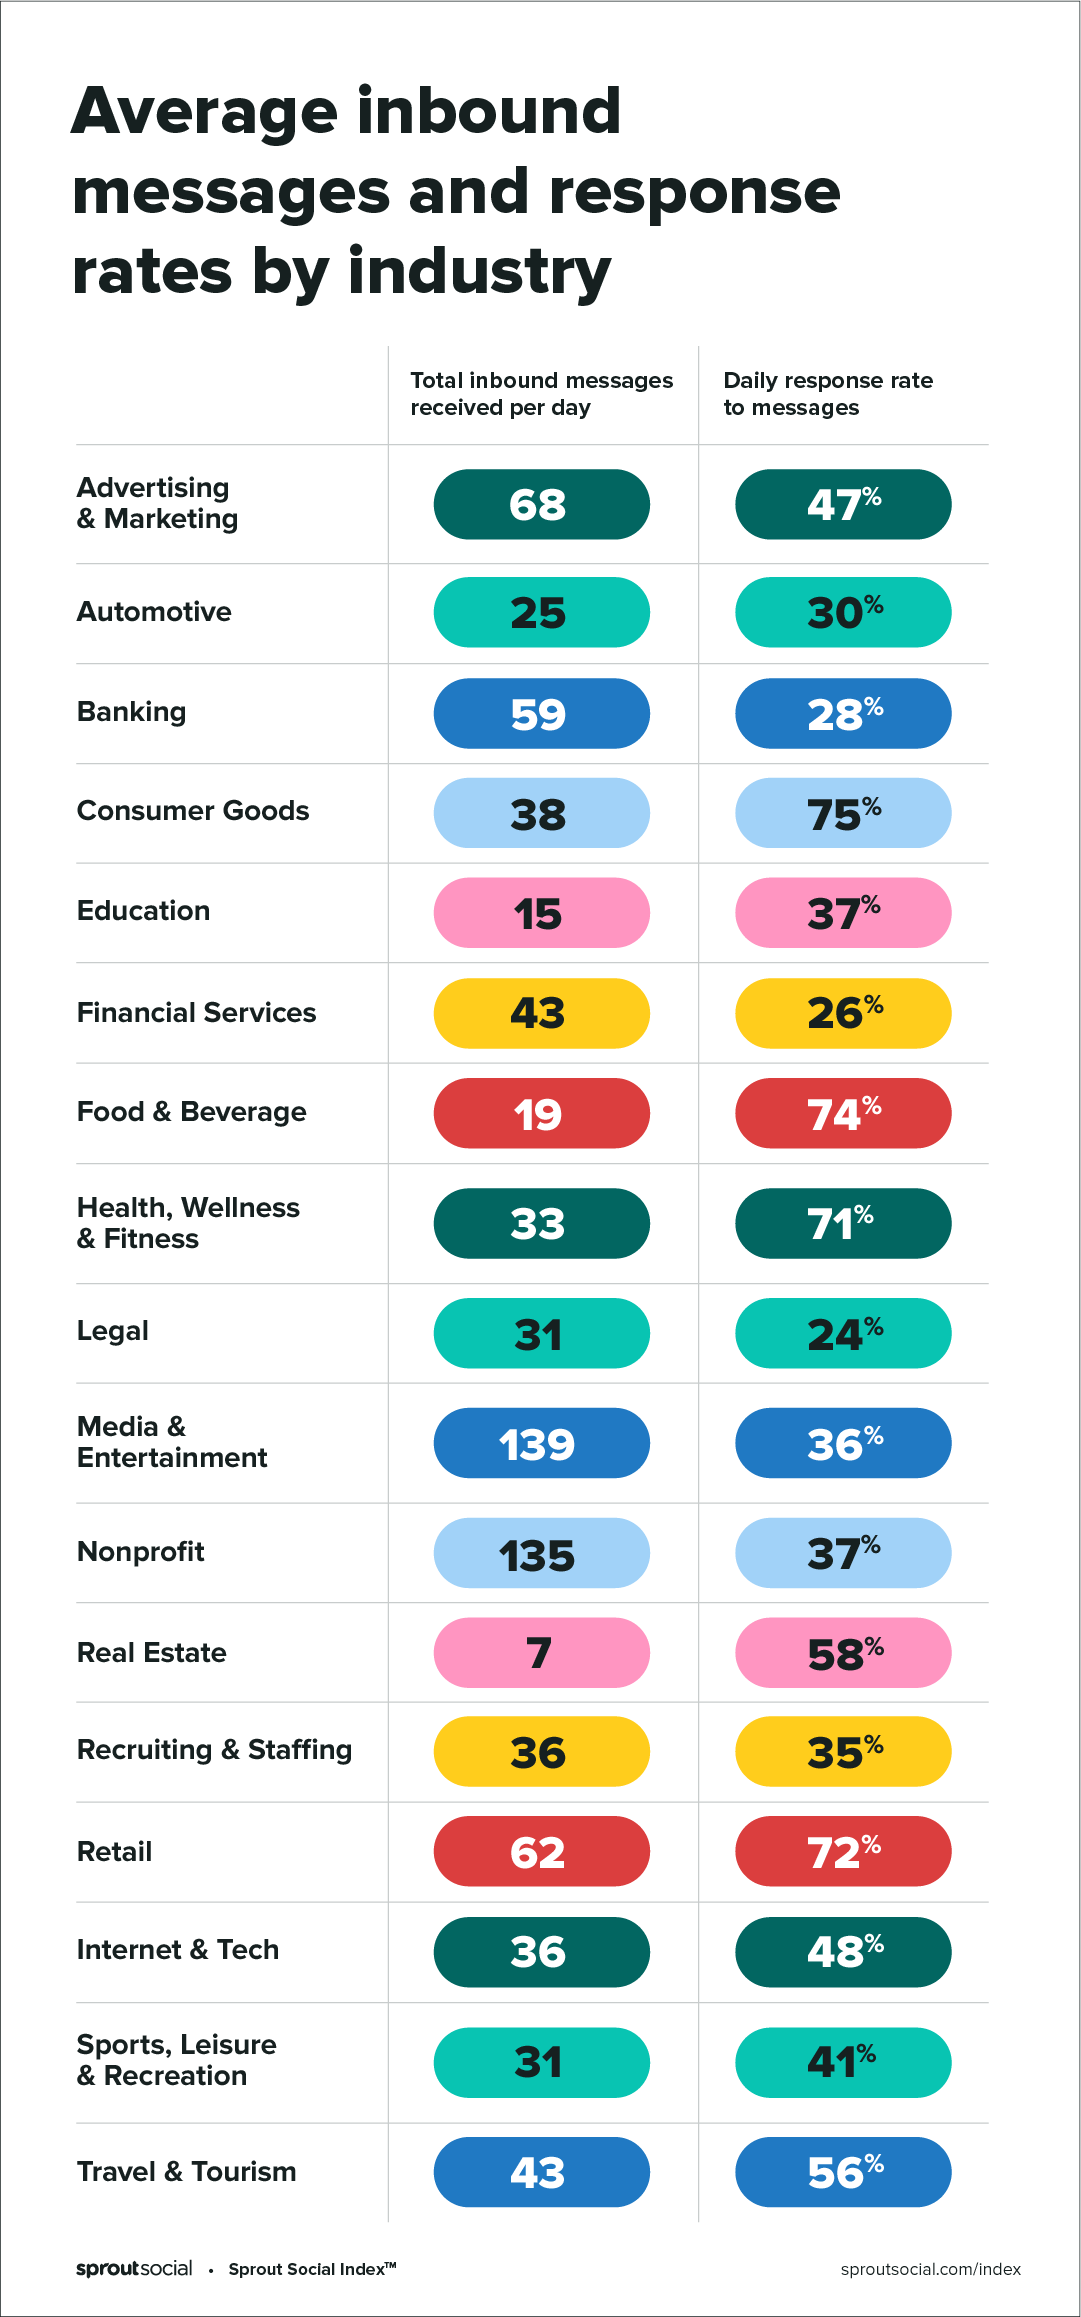 Average inbound social media messages and response rates by industry